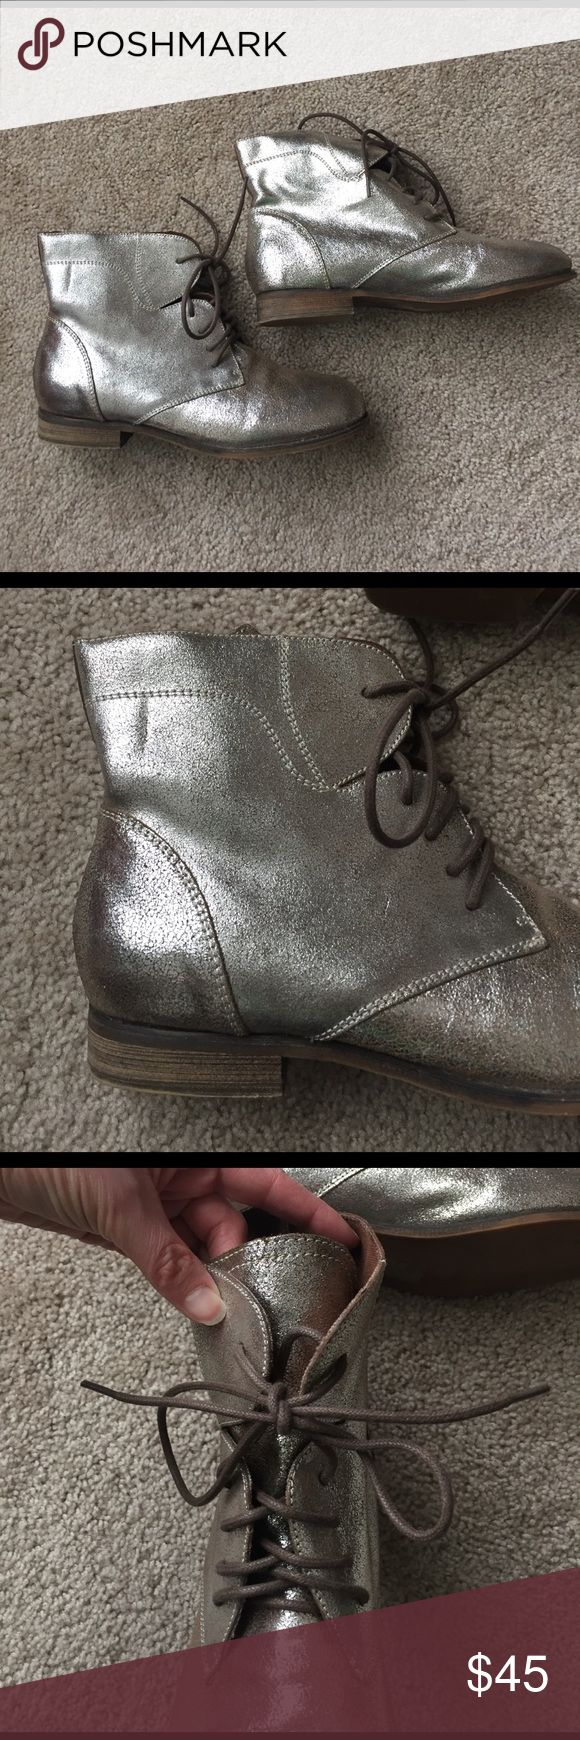 Ecote silver ankle boots sz 9 Excellent condition silver crackle lace up ankle boots ! No signs of wear on fabric. Urban Outfitters Shoes Ankle Boots & Booties